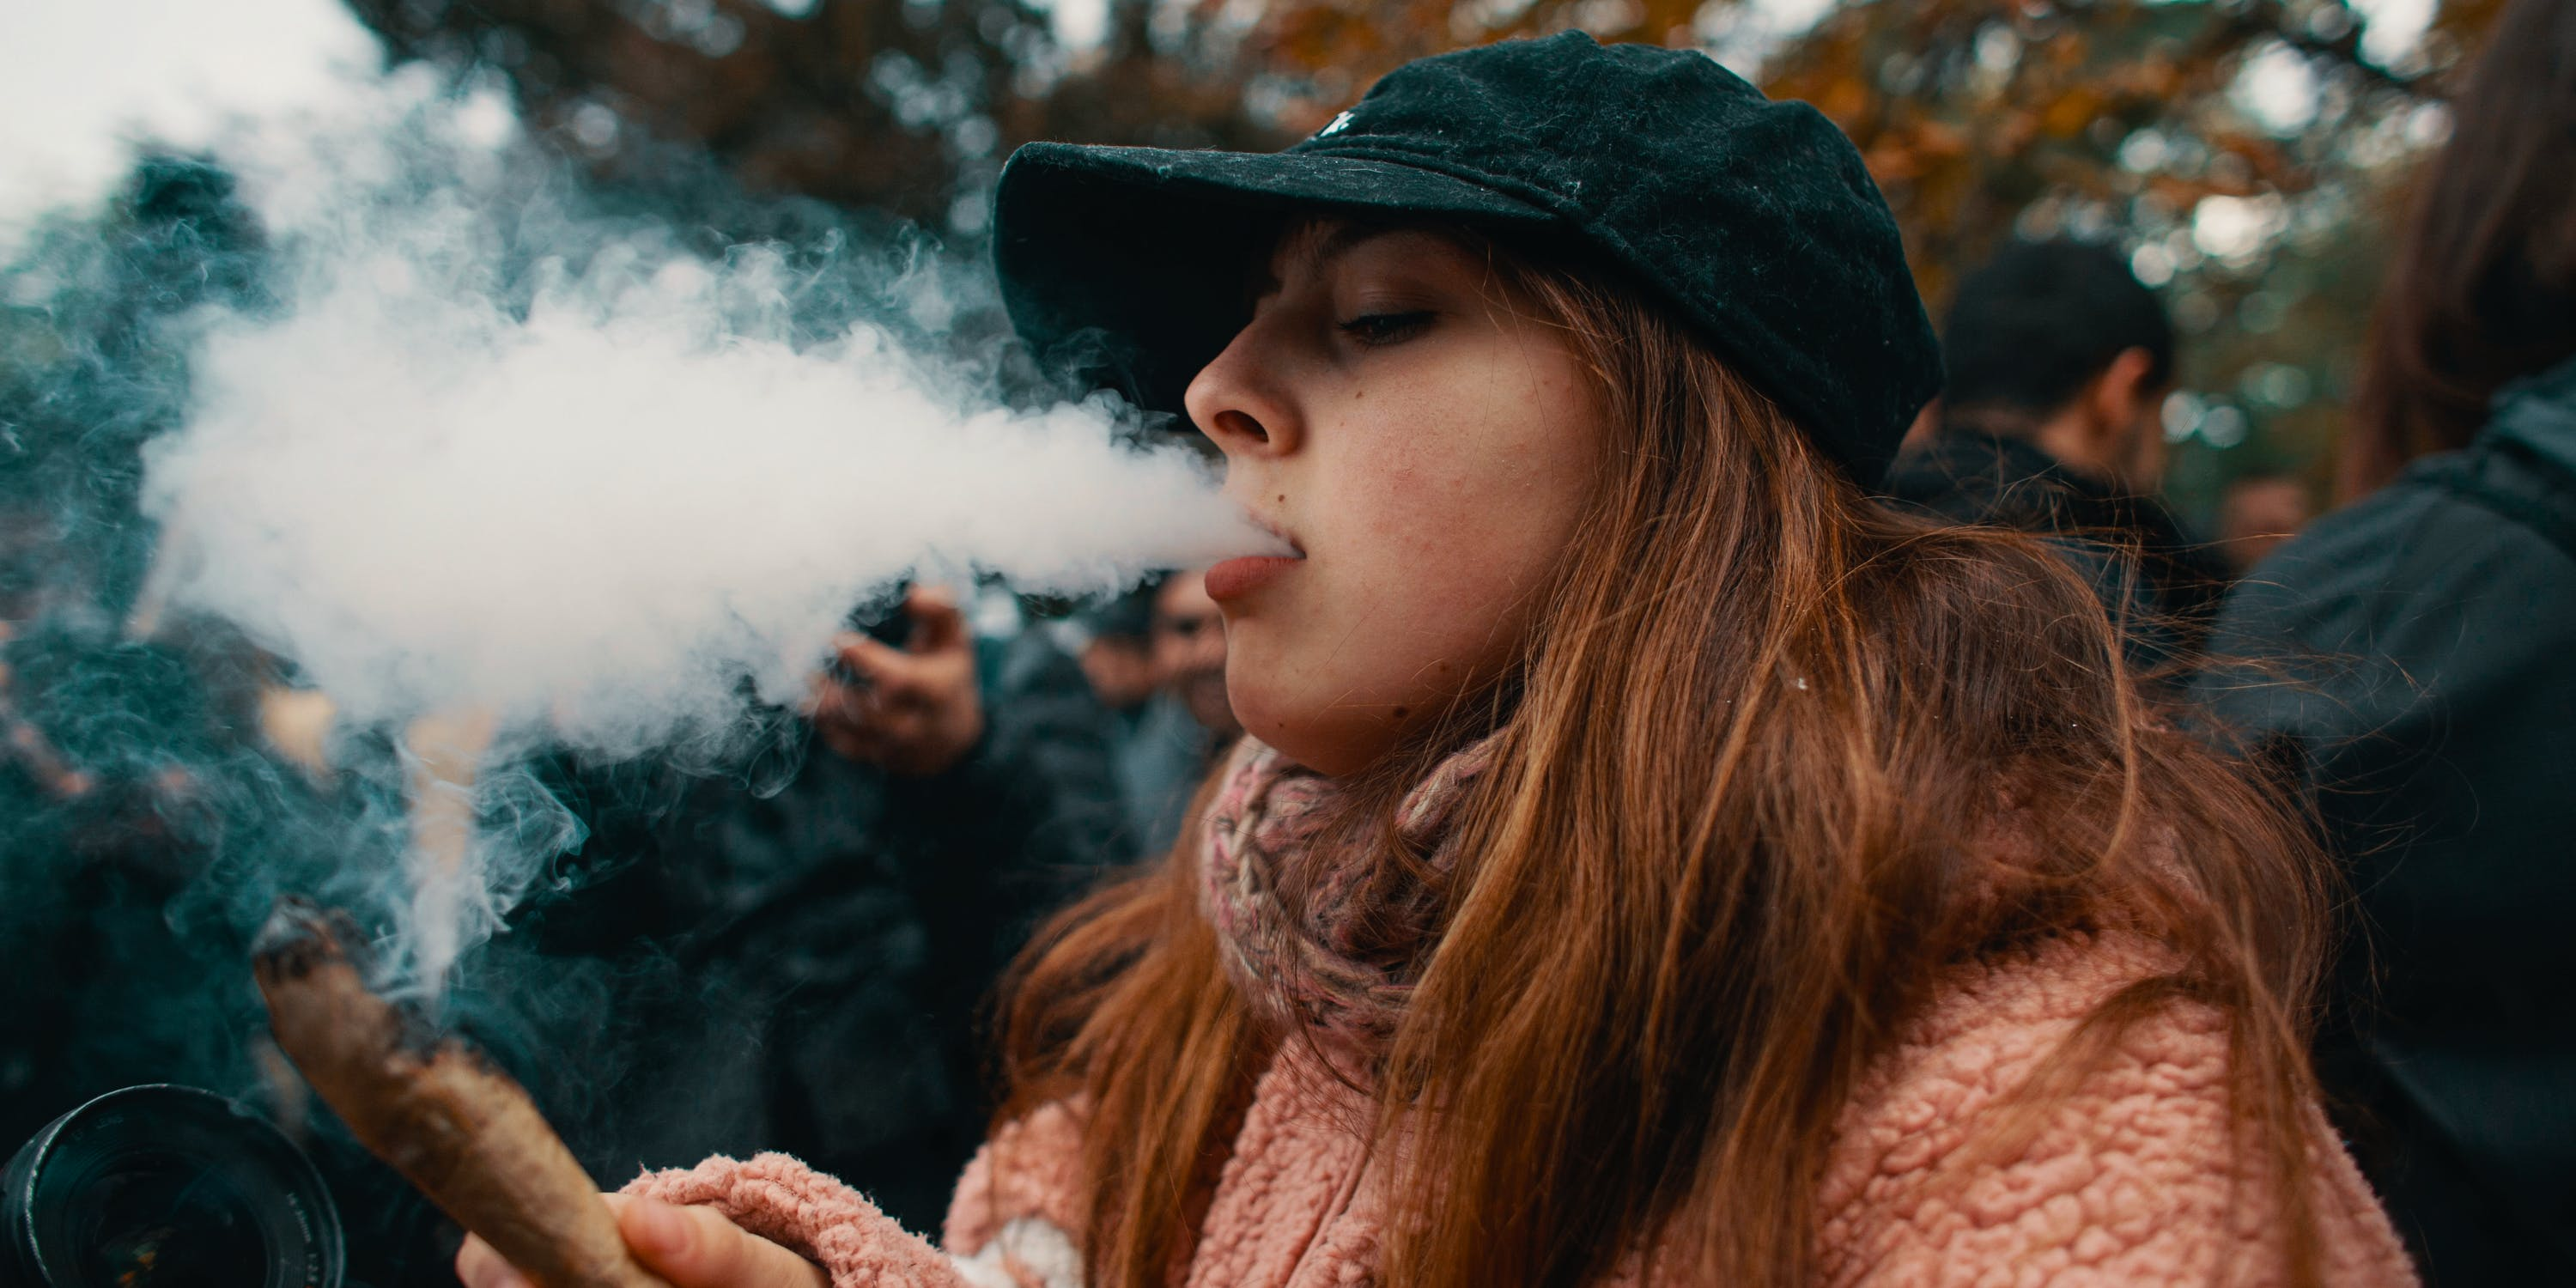 A woman consumes cannabis, to find out how the recent midterms affected legal cannabis, read more here.